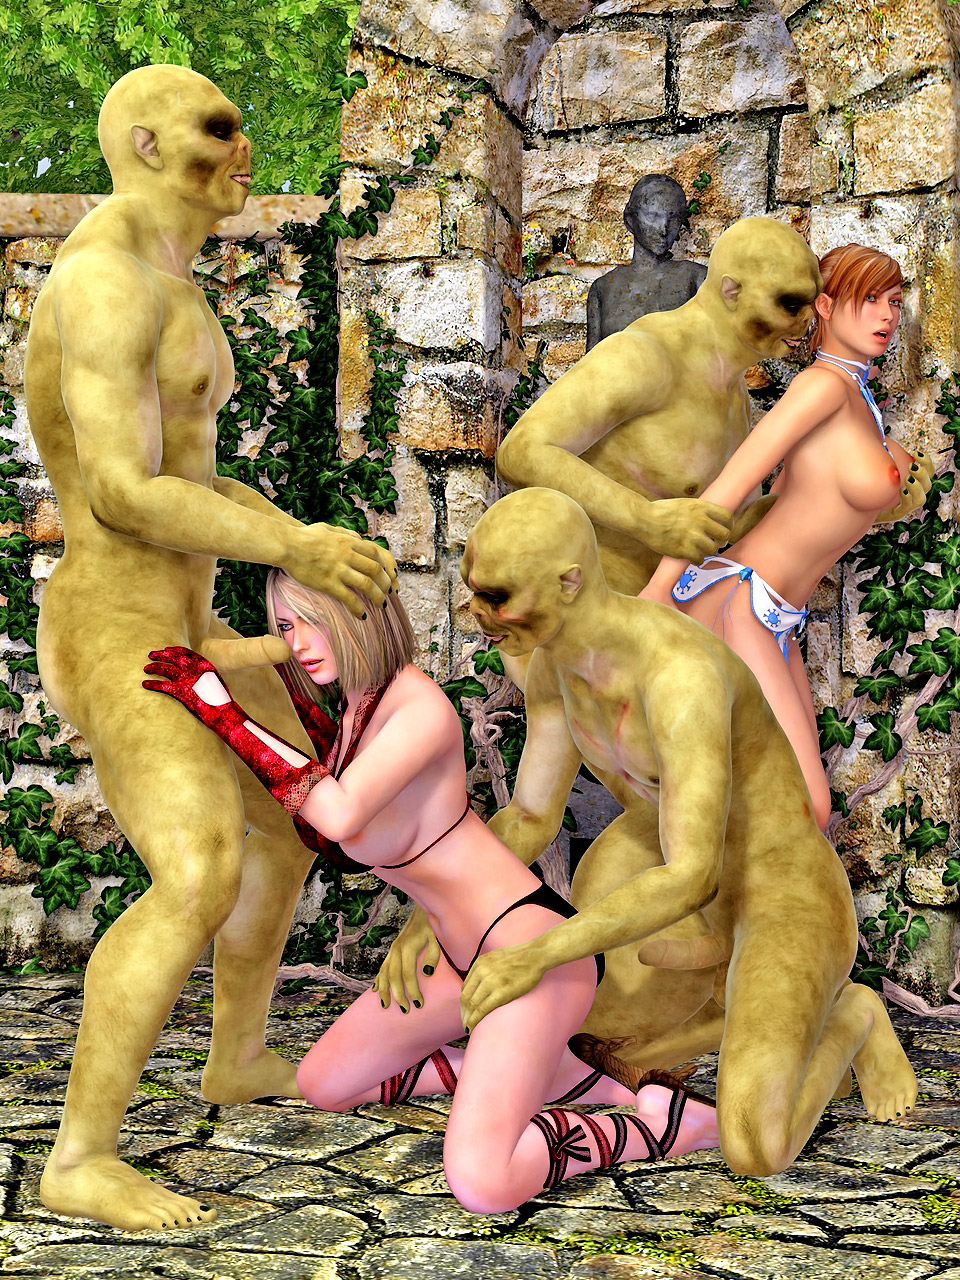 The warrior 3d sex photo gallery nude picture